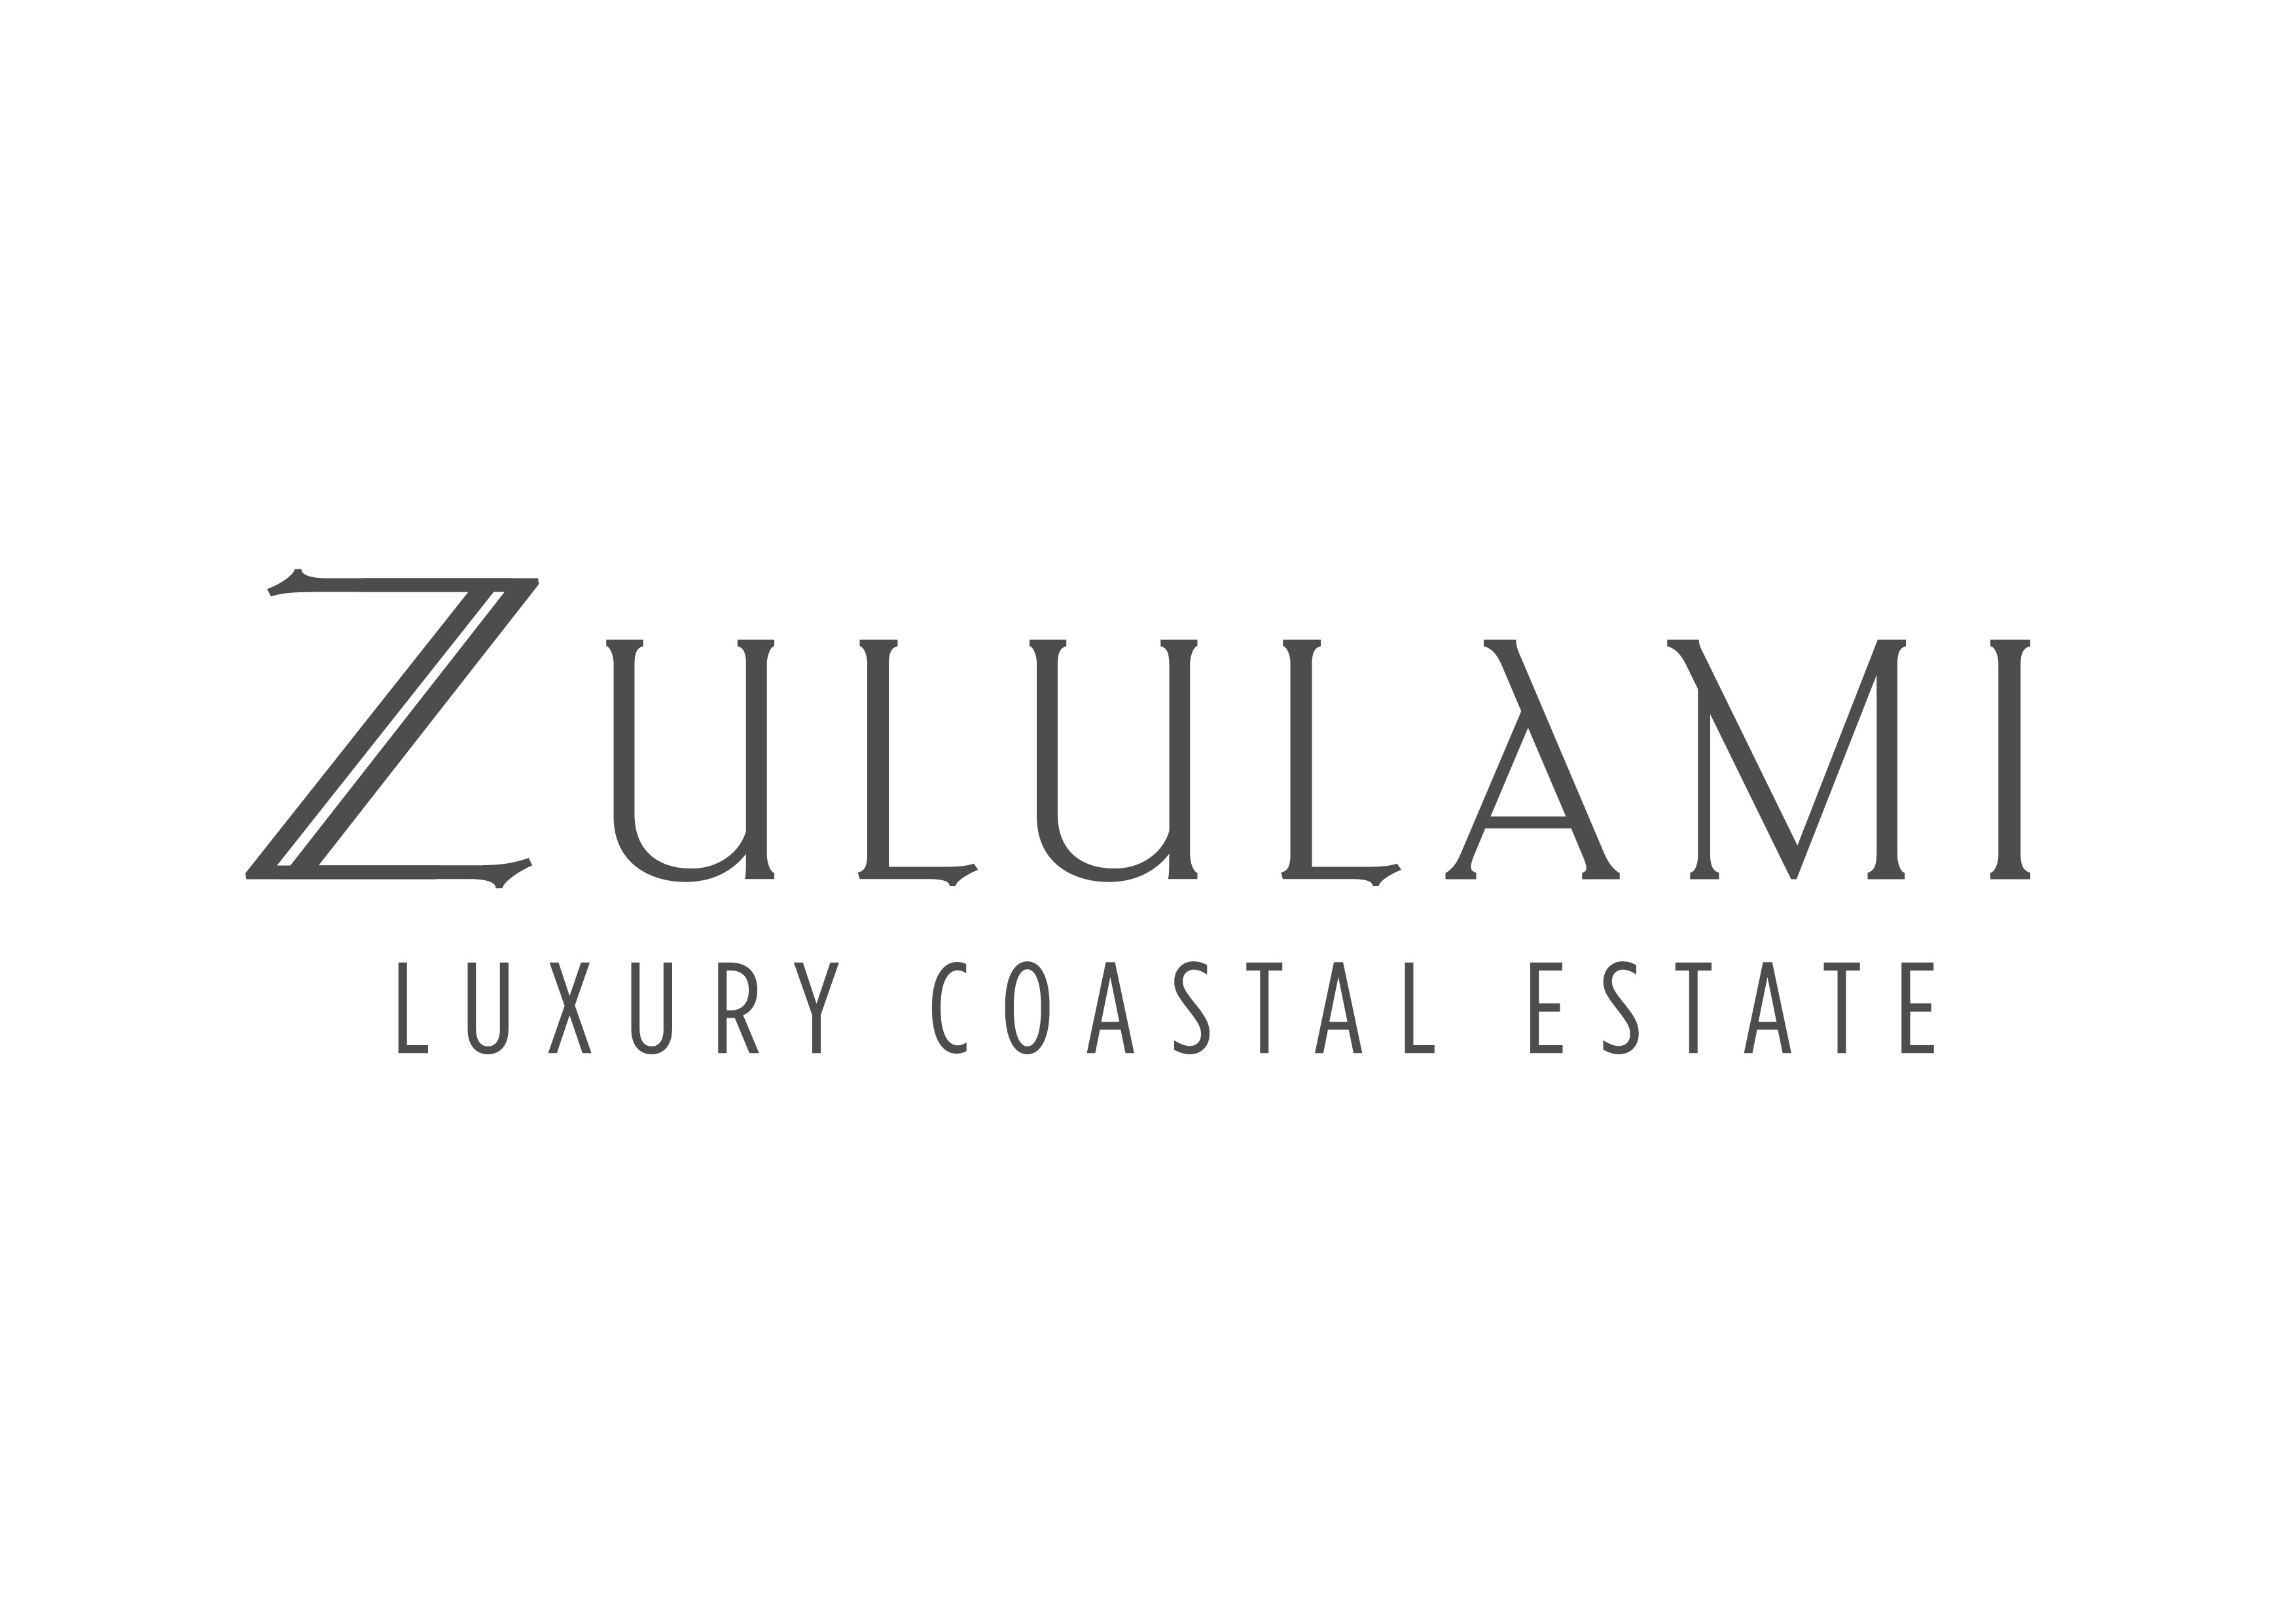 Zululami Estate